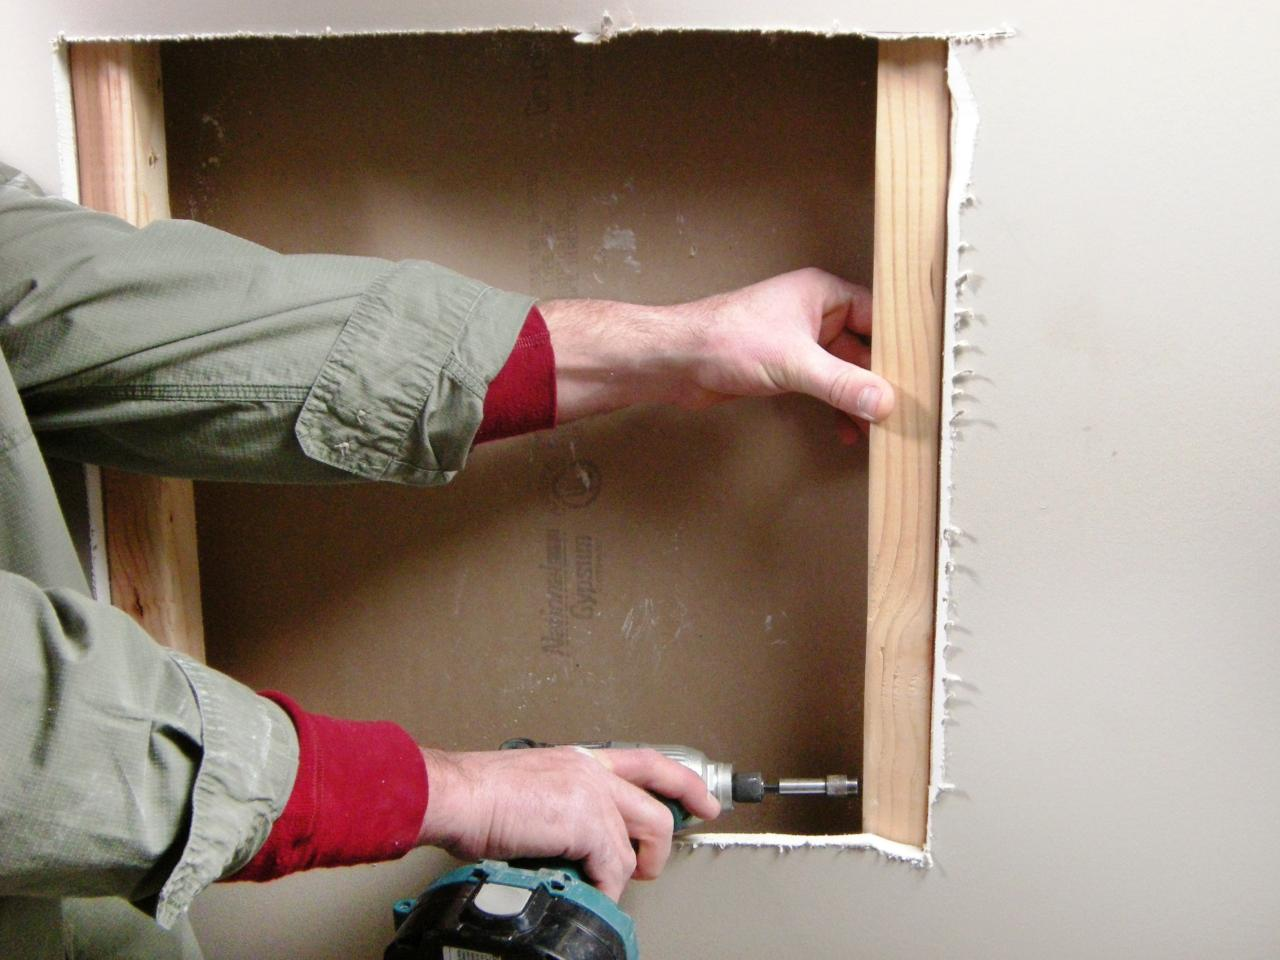 How to repair large hole in drywall - Ultimate How To_drywall Repair Large Hole 02_s4x3